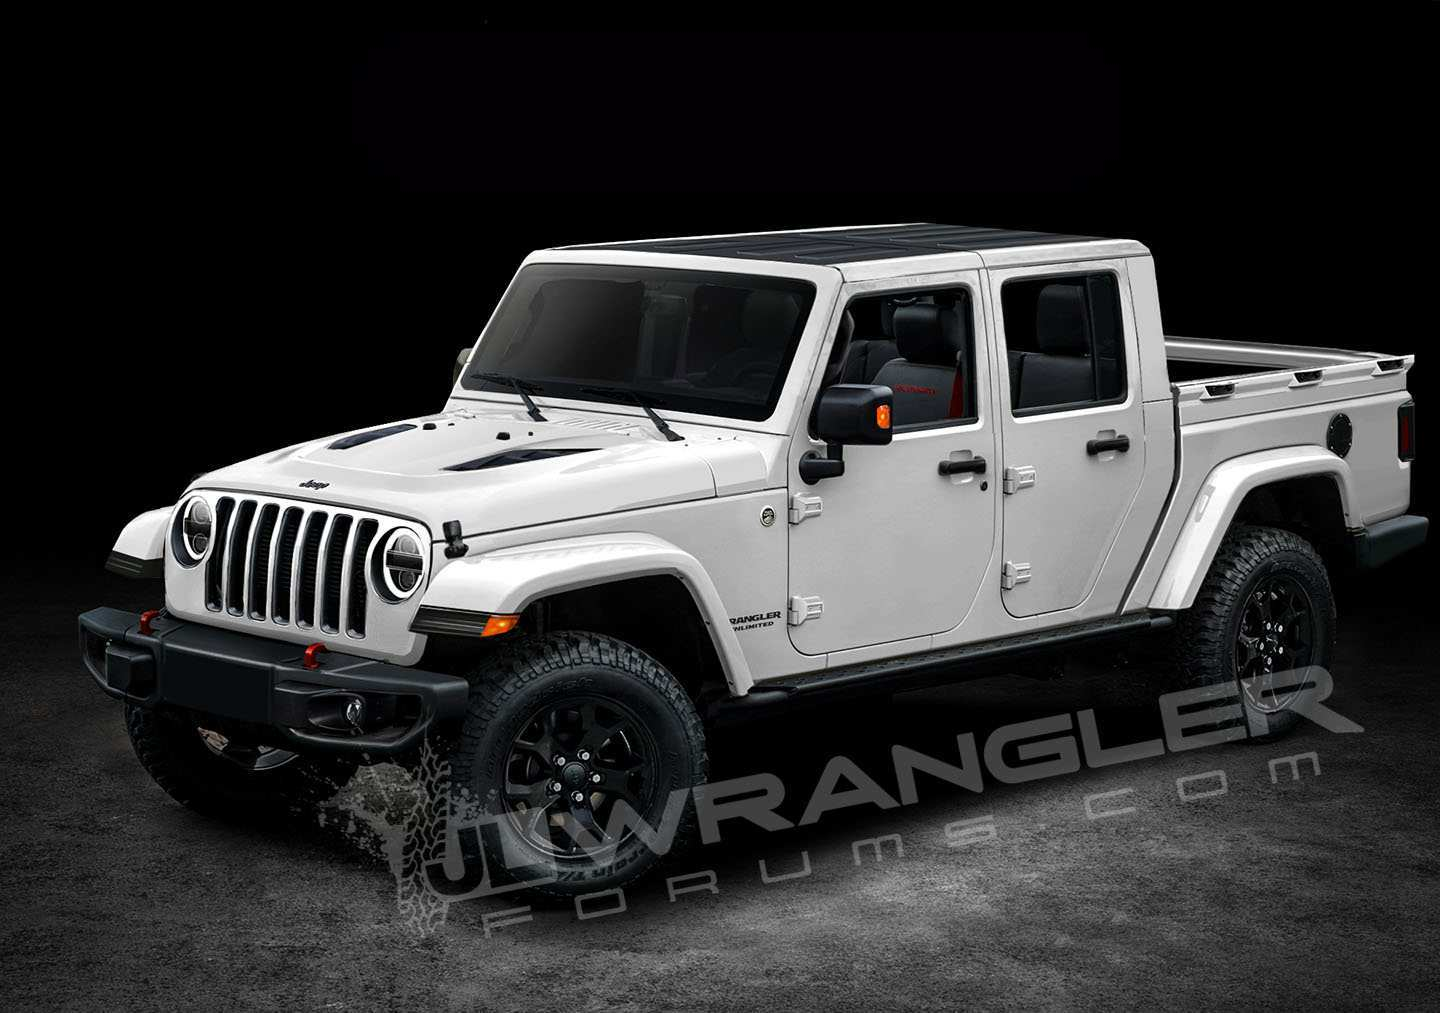 12 Concept of Best Jeep Wrangler Pickup 2019 Concept Redesign And Review Wallpaper with Best Jeep Wrangler Pickup 2019 Concept Redesign And Review